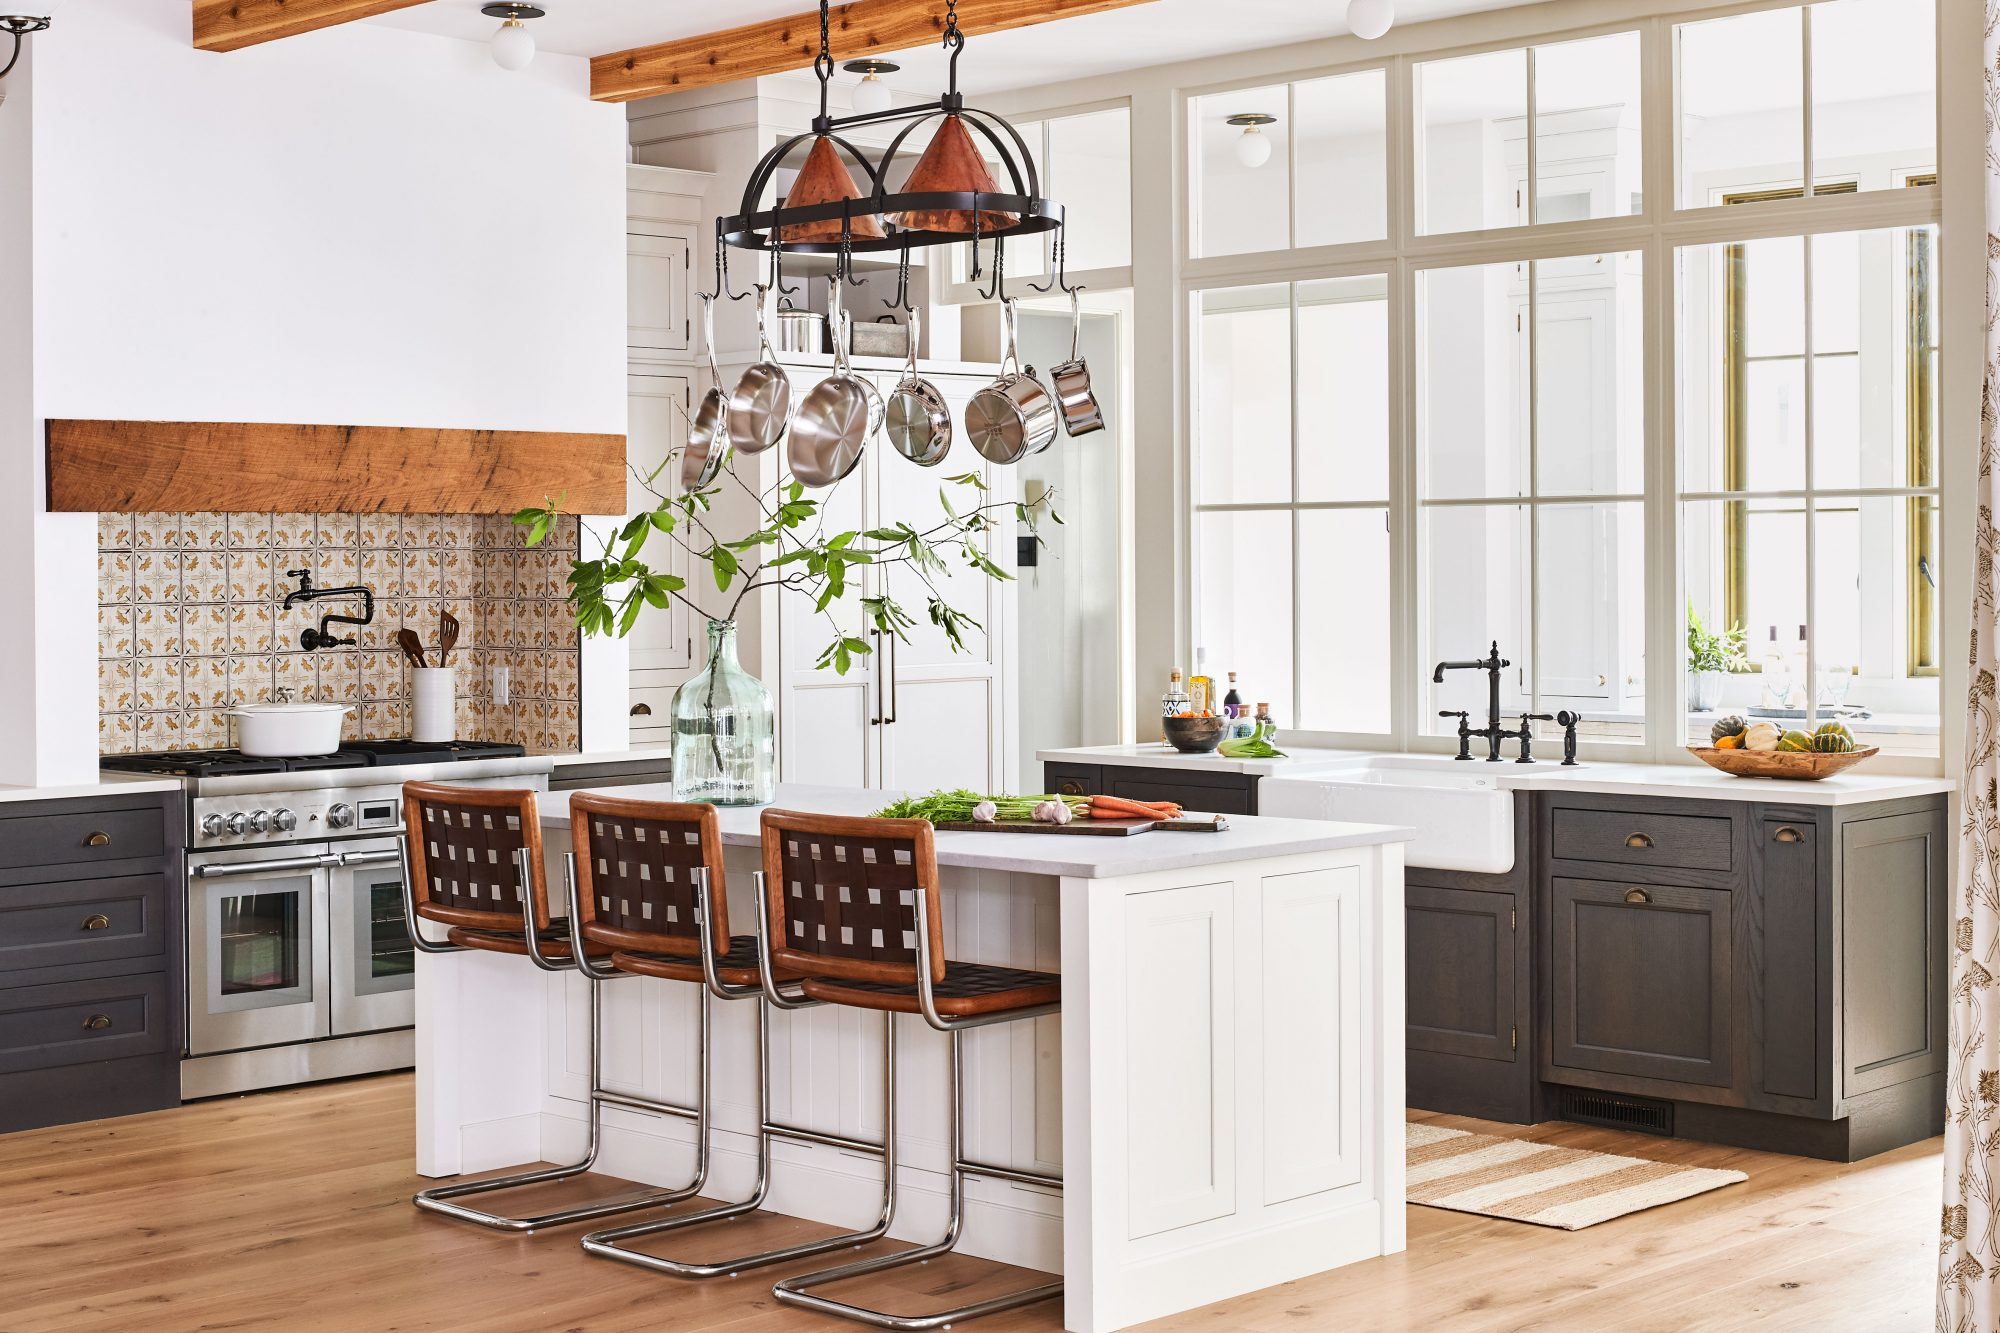 Idea House 2020 Kitchen with White Island and Dark lower Cabinets